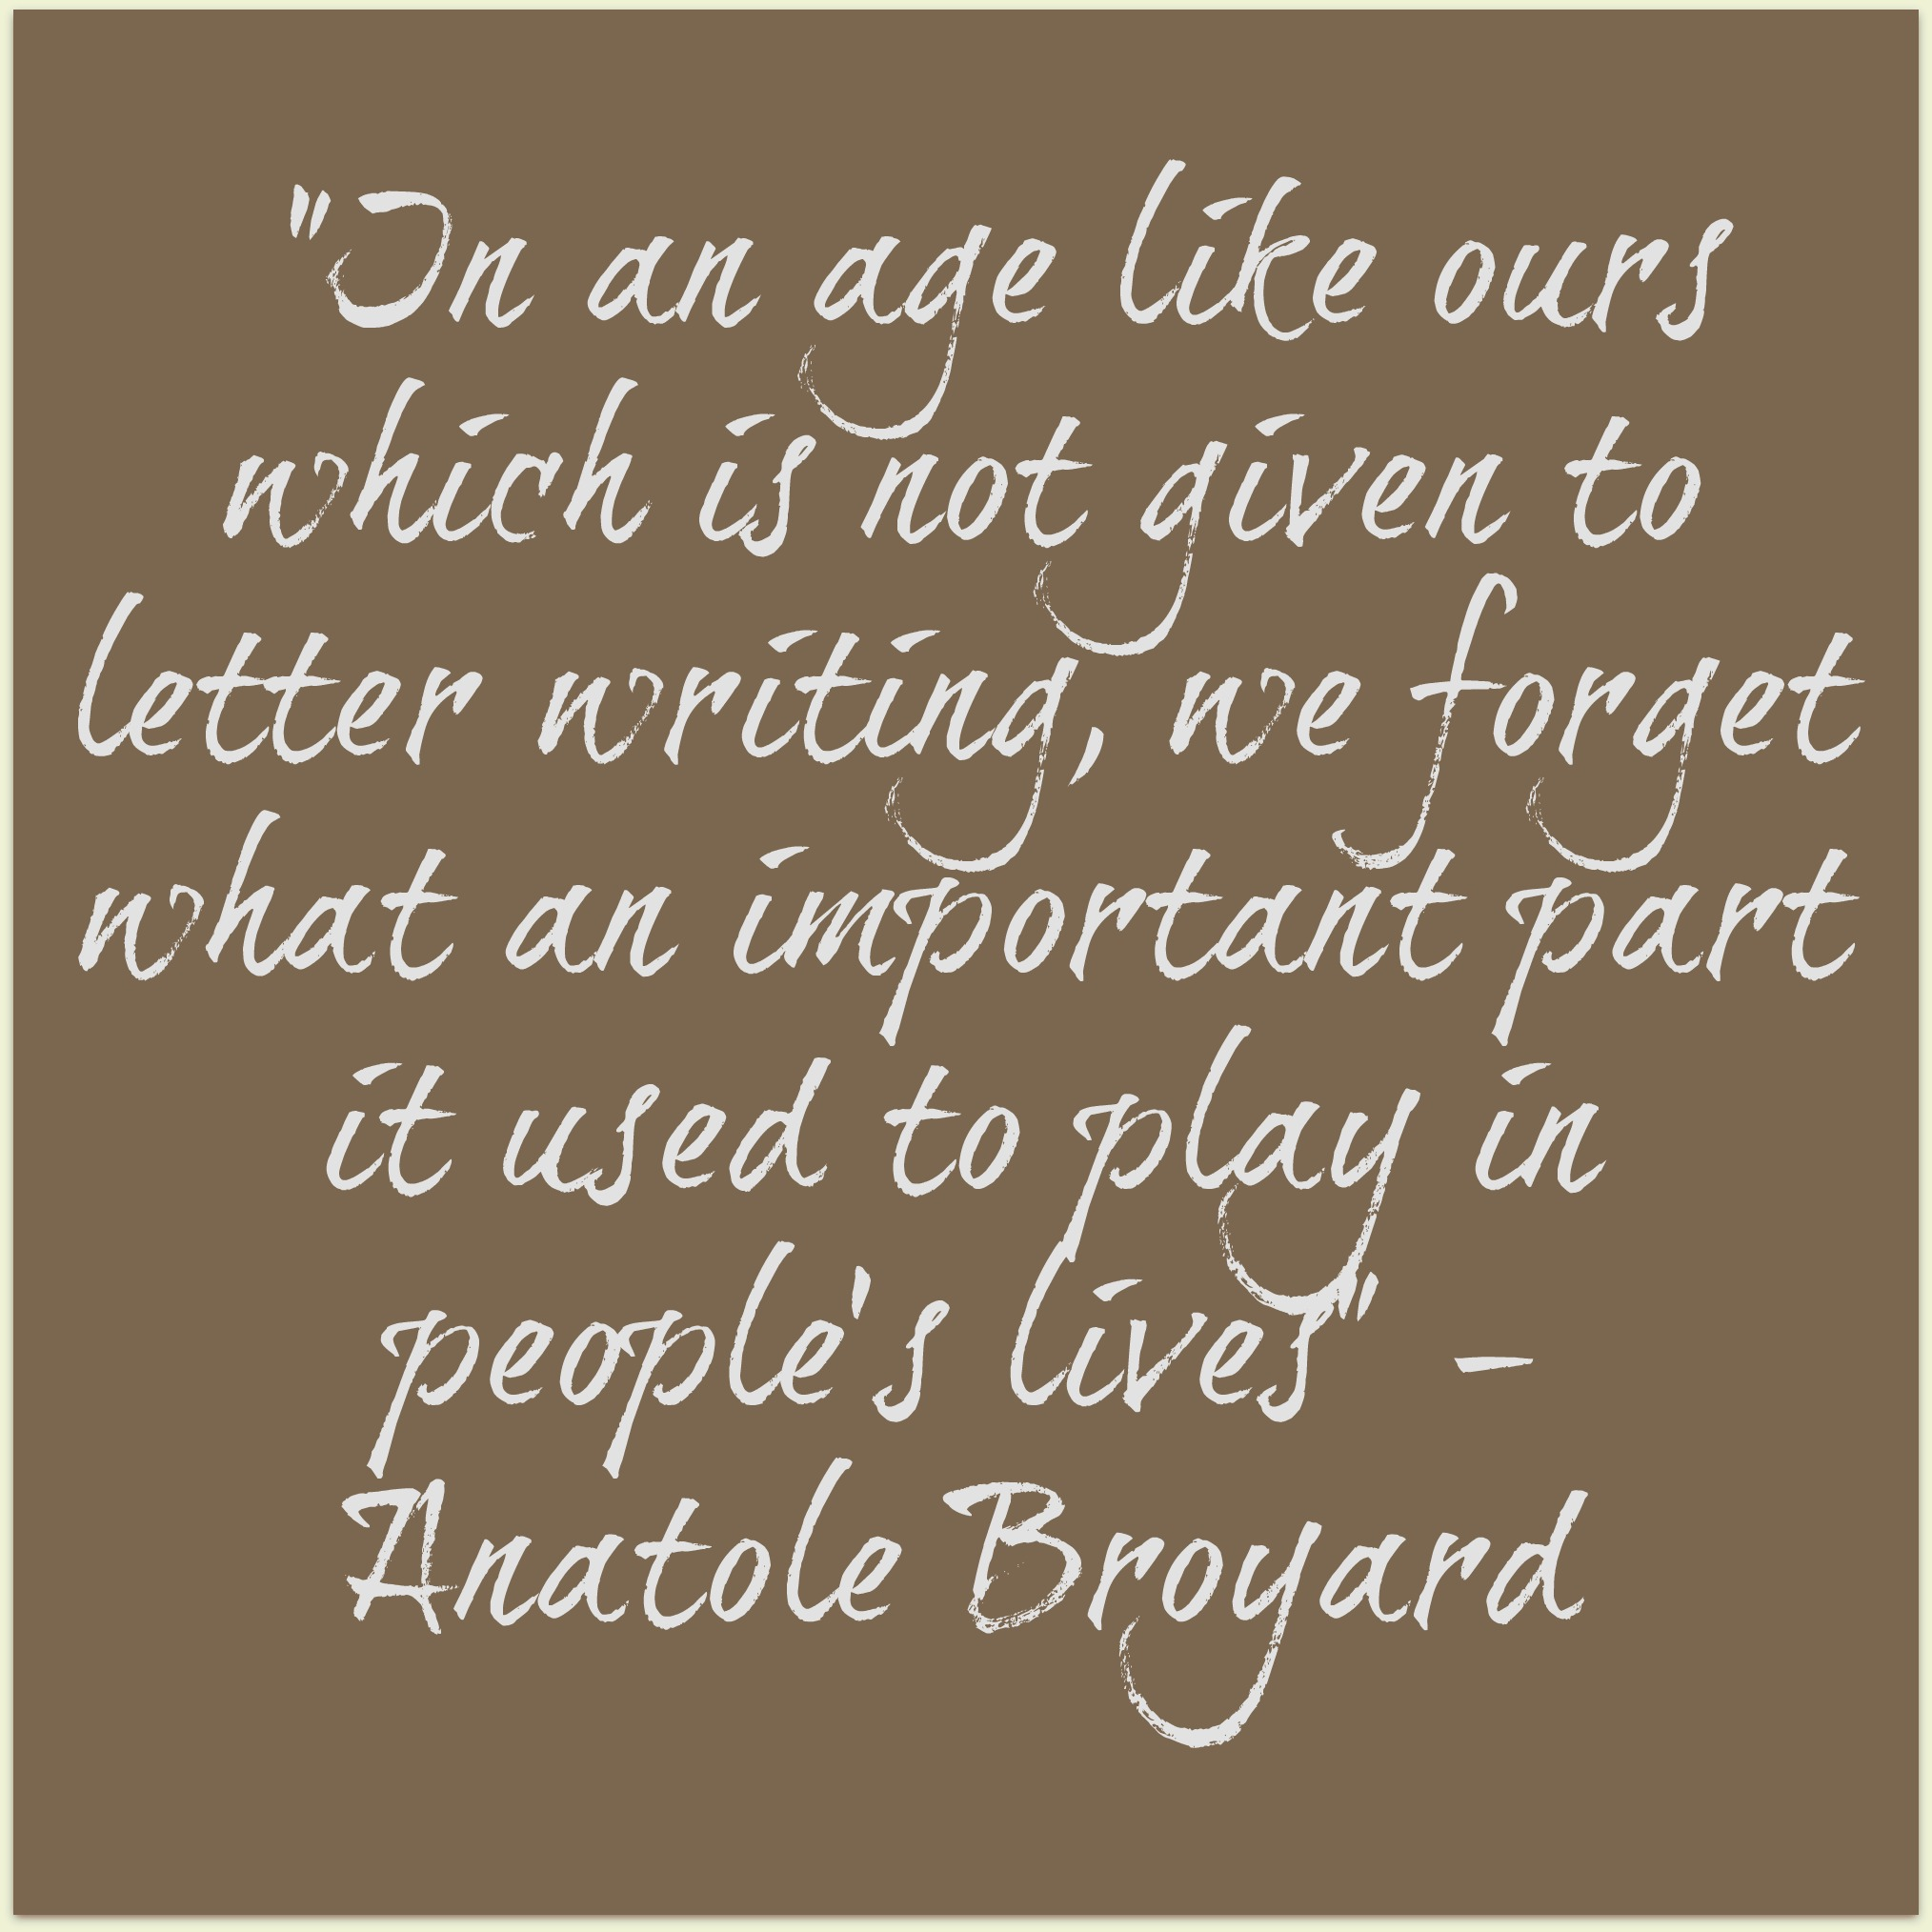 Quotes: The Handwritten Letter Appreciation Society